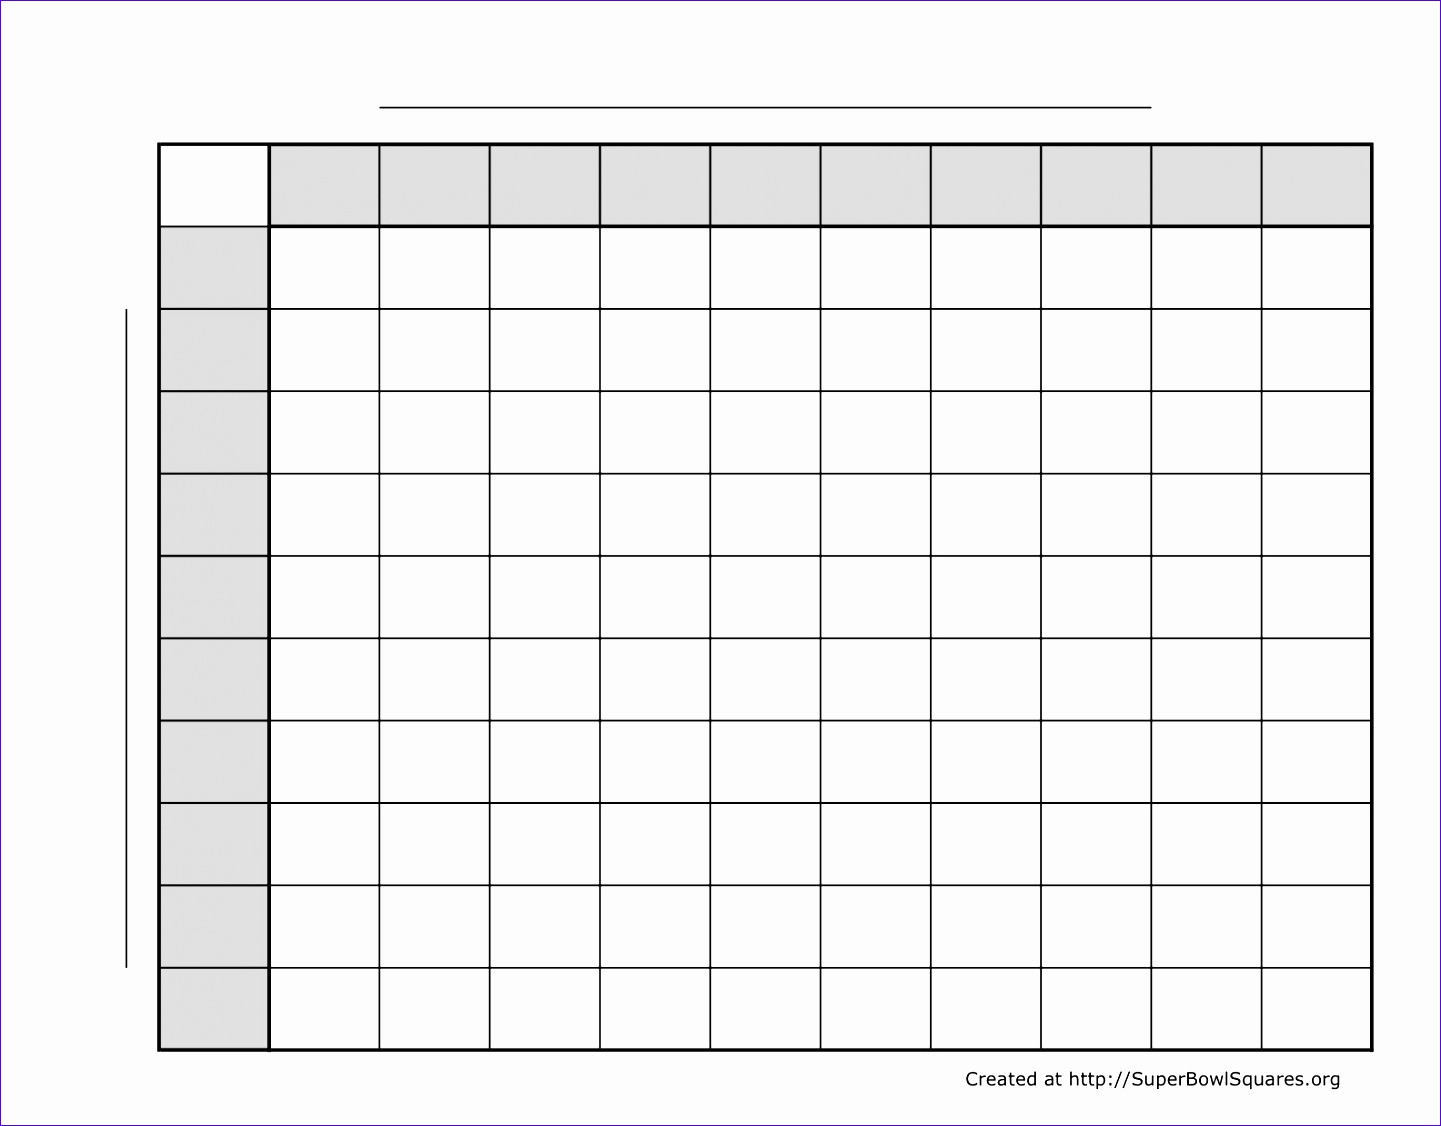 Super Bowl Squares Template Excel Unique 5 Super Bowl Squares Excel Template Exceltemplates